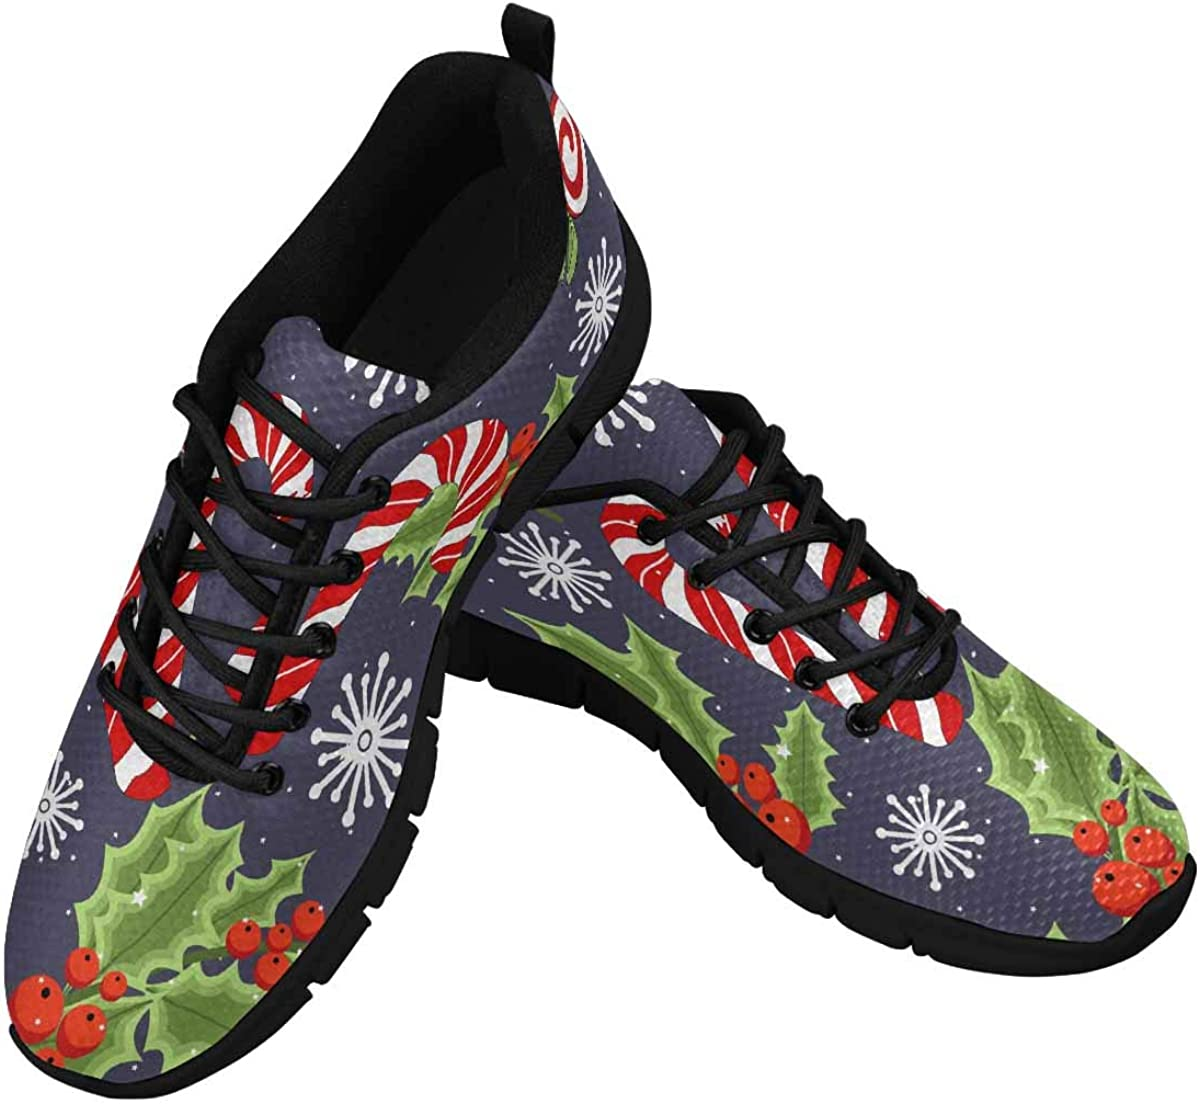 INTERESTPRINT Christmas Reindeer and Holiday Items Women's Breathable Comfort Mesh Fashion Sneakers